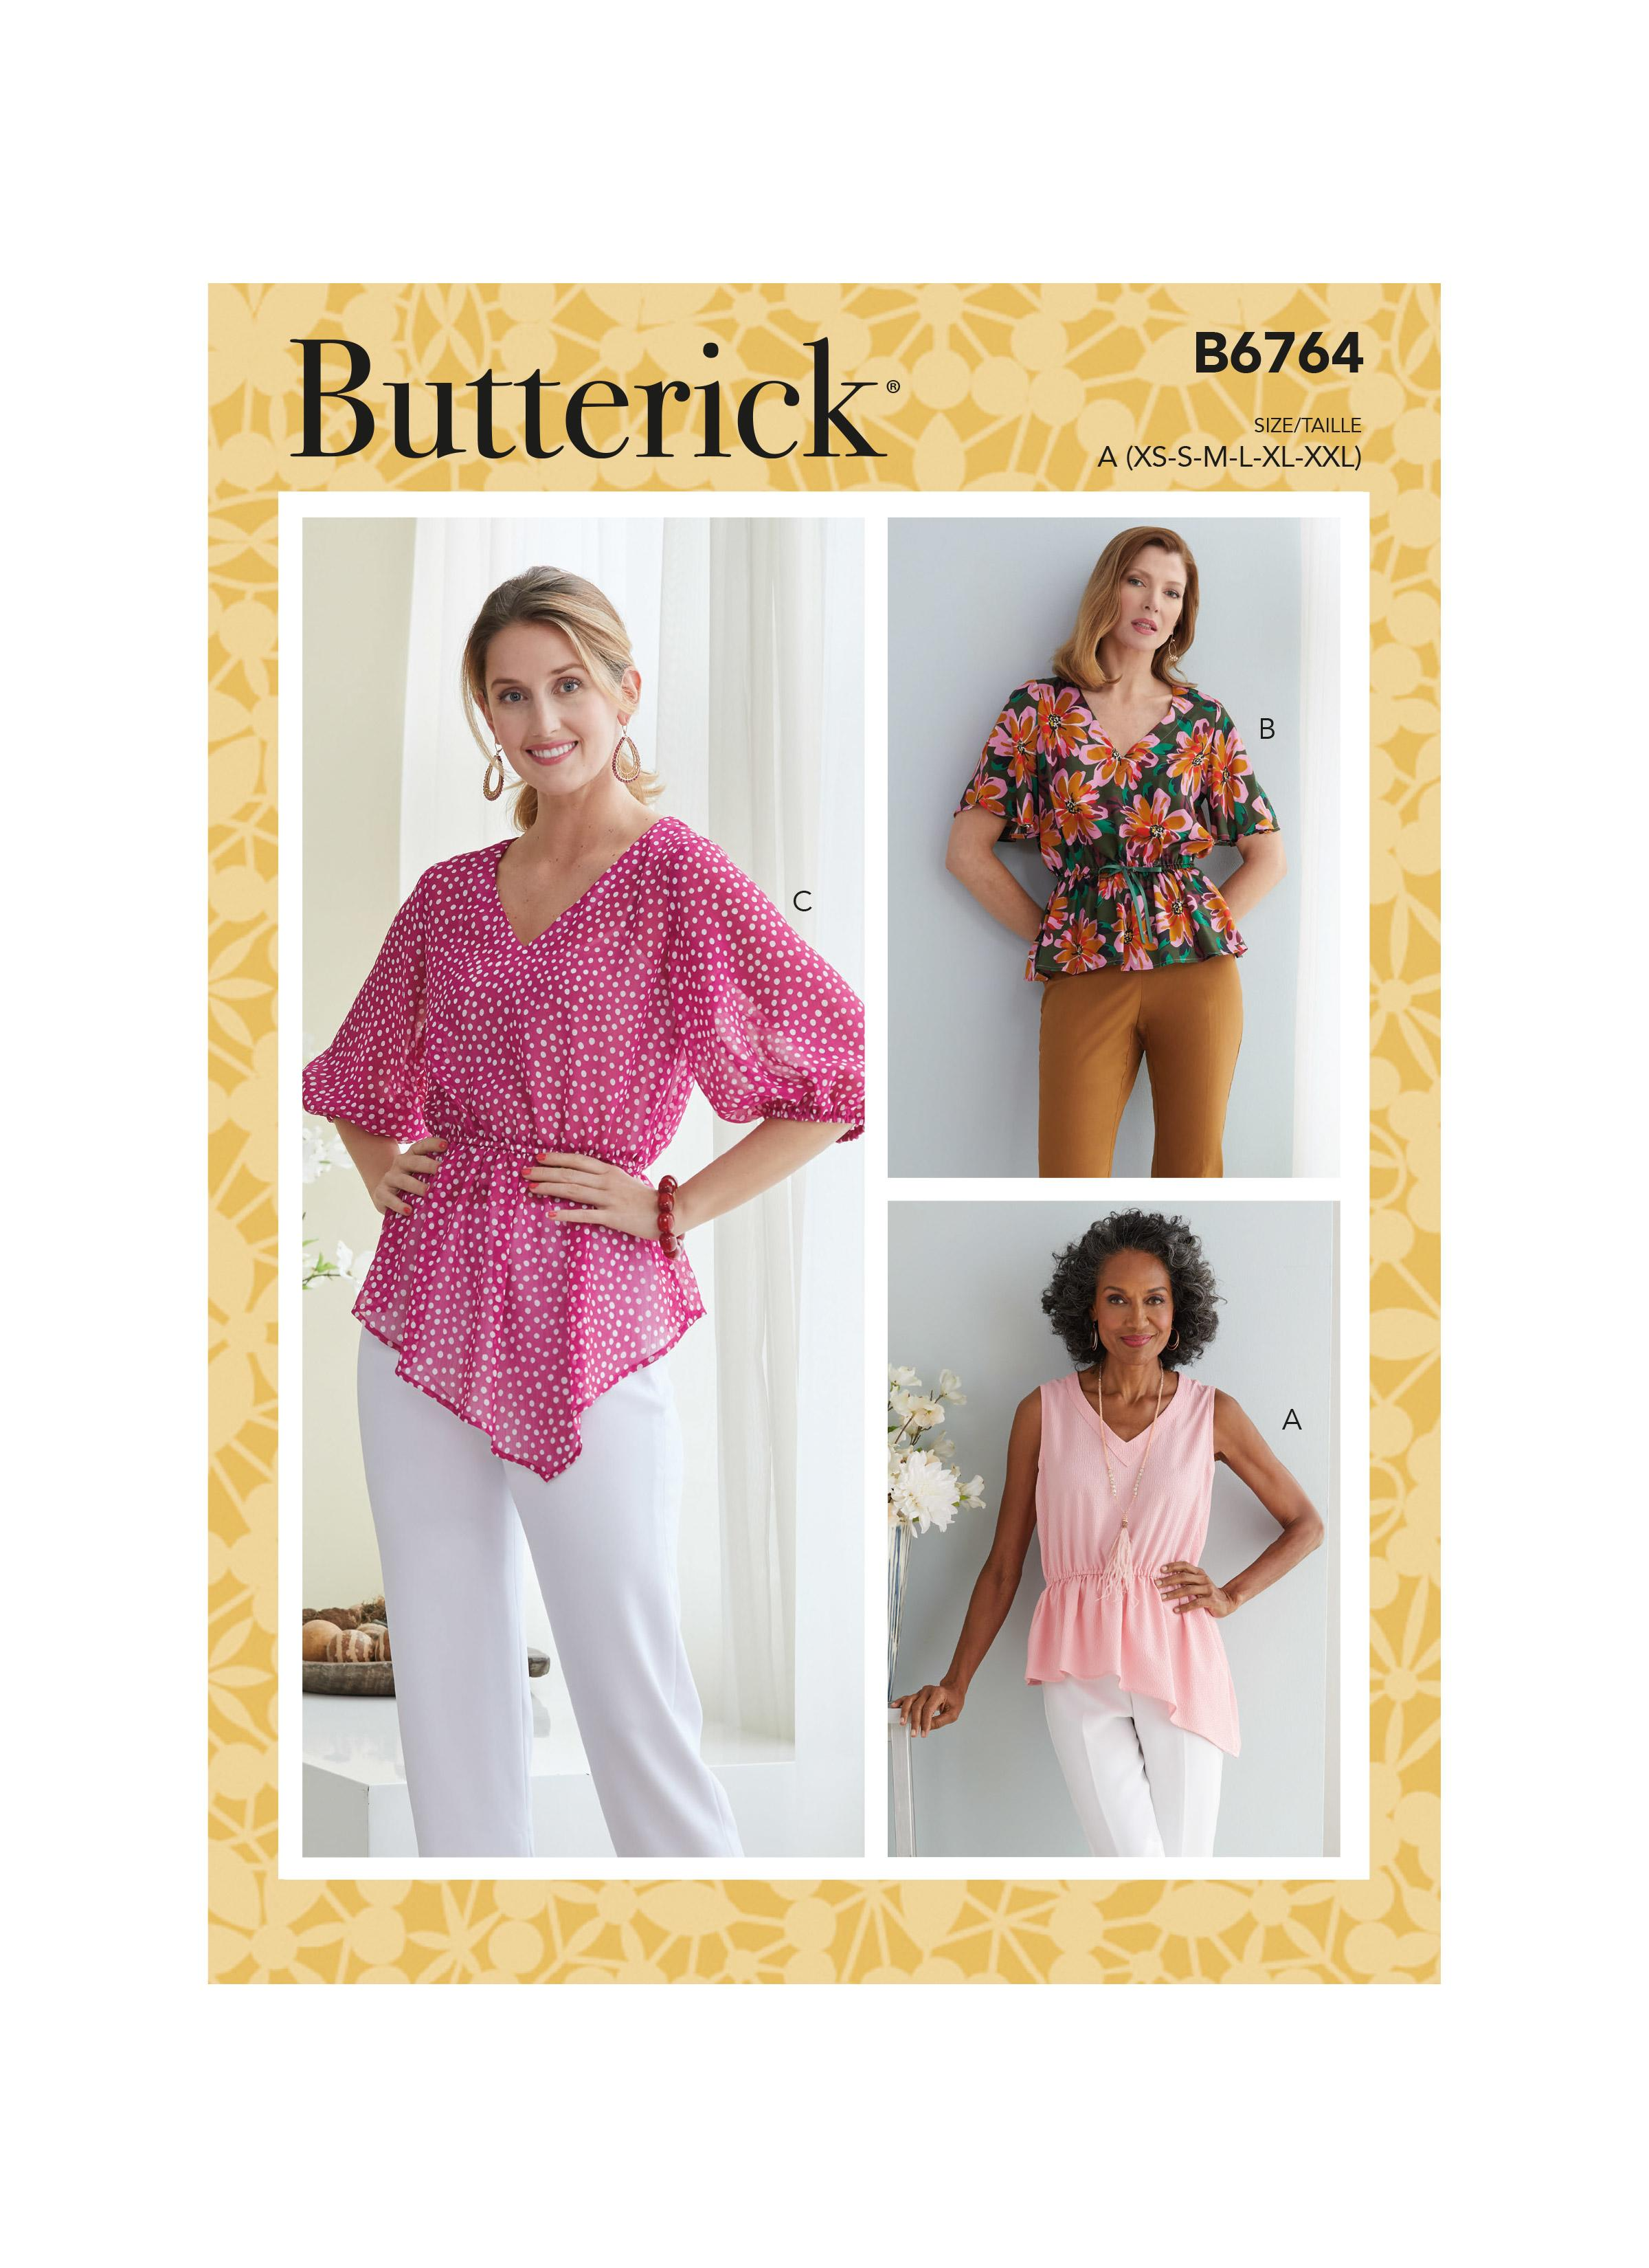 Butterick B6764 Misses' Tops